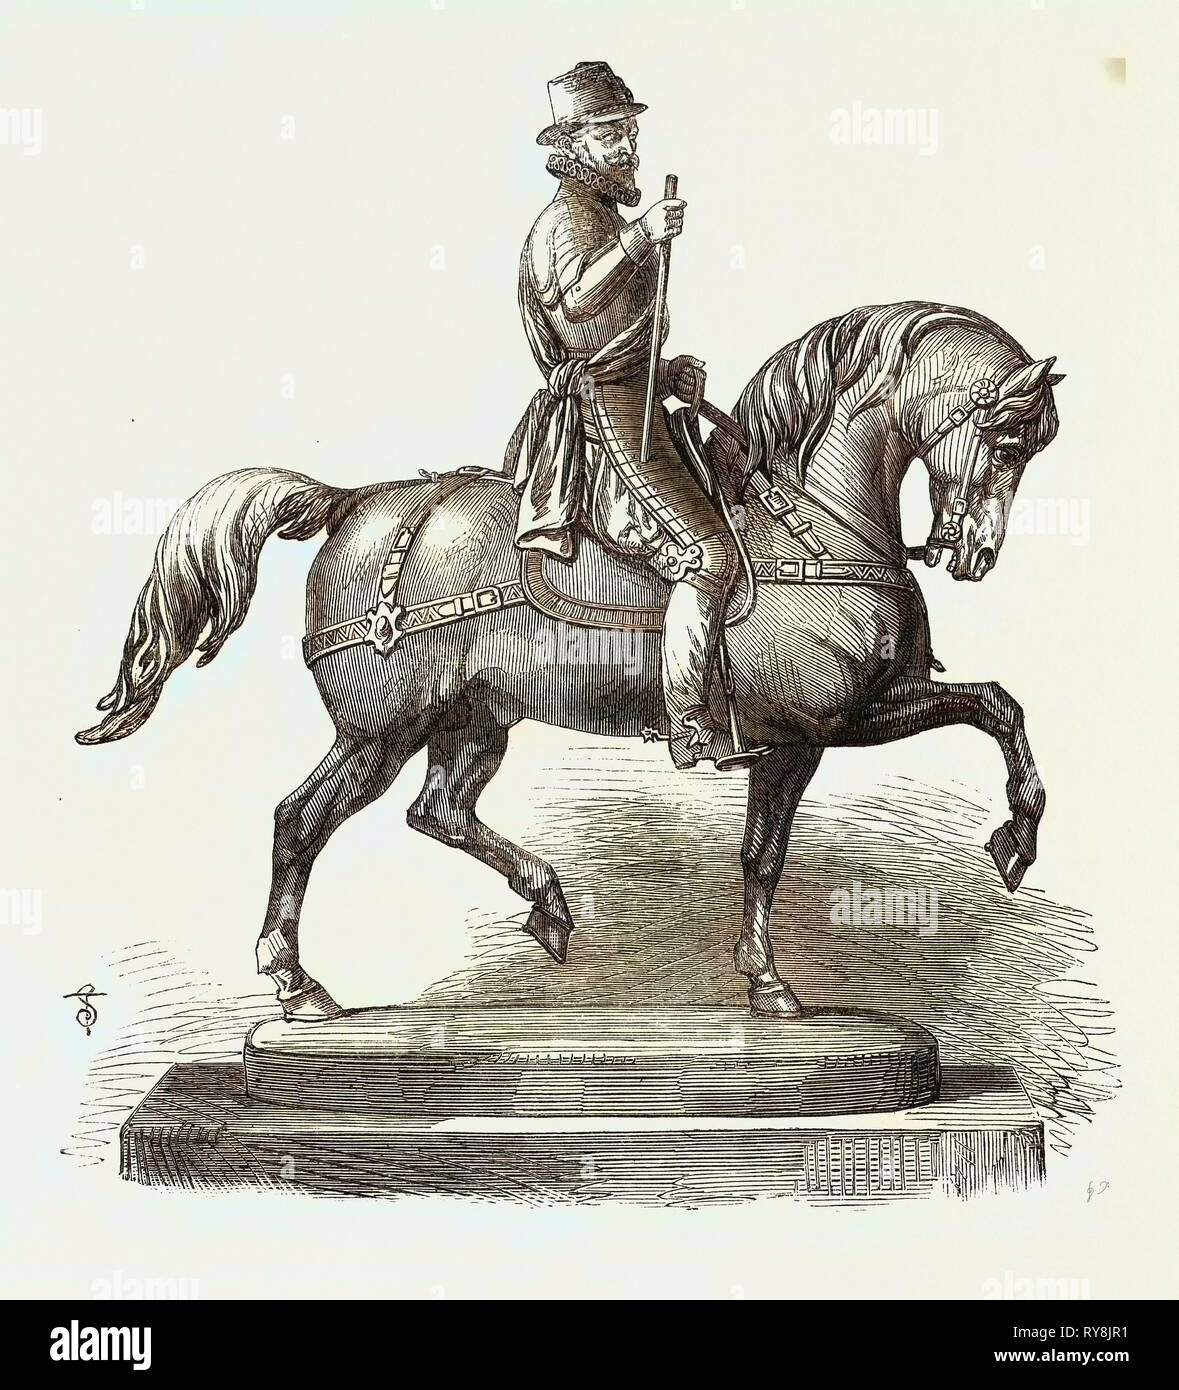 Silver Statuette of William the Taciturn a Prize for the Forthcoming International Steeplechase at Baden-Baden Germany Stock Photo